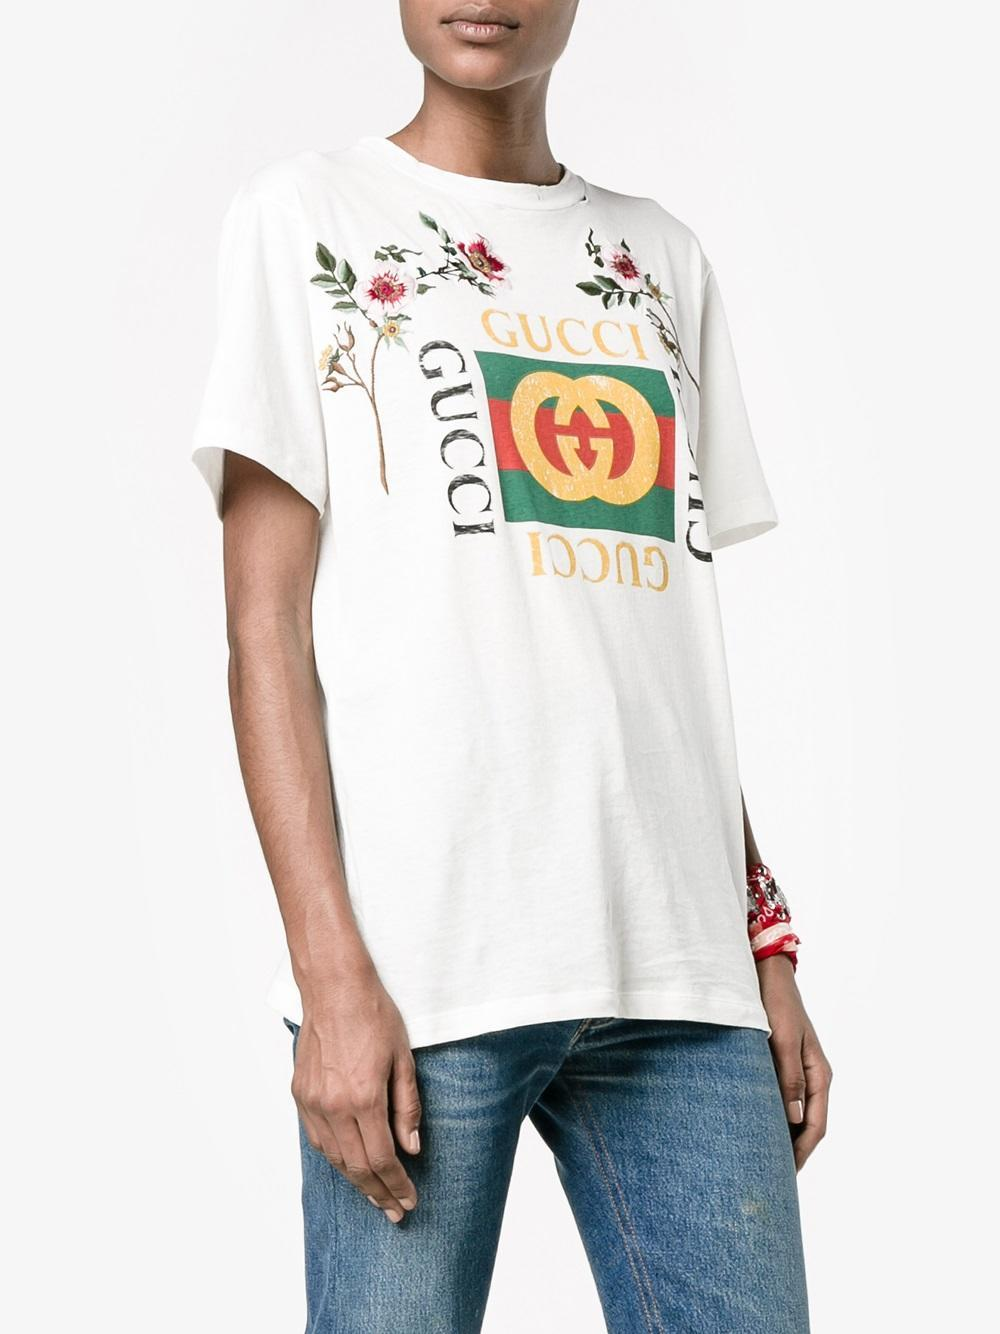 3589aed84d68 Gucci 'fake ' Embroidered T-shirt in White - Lyst